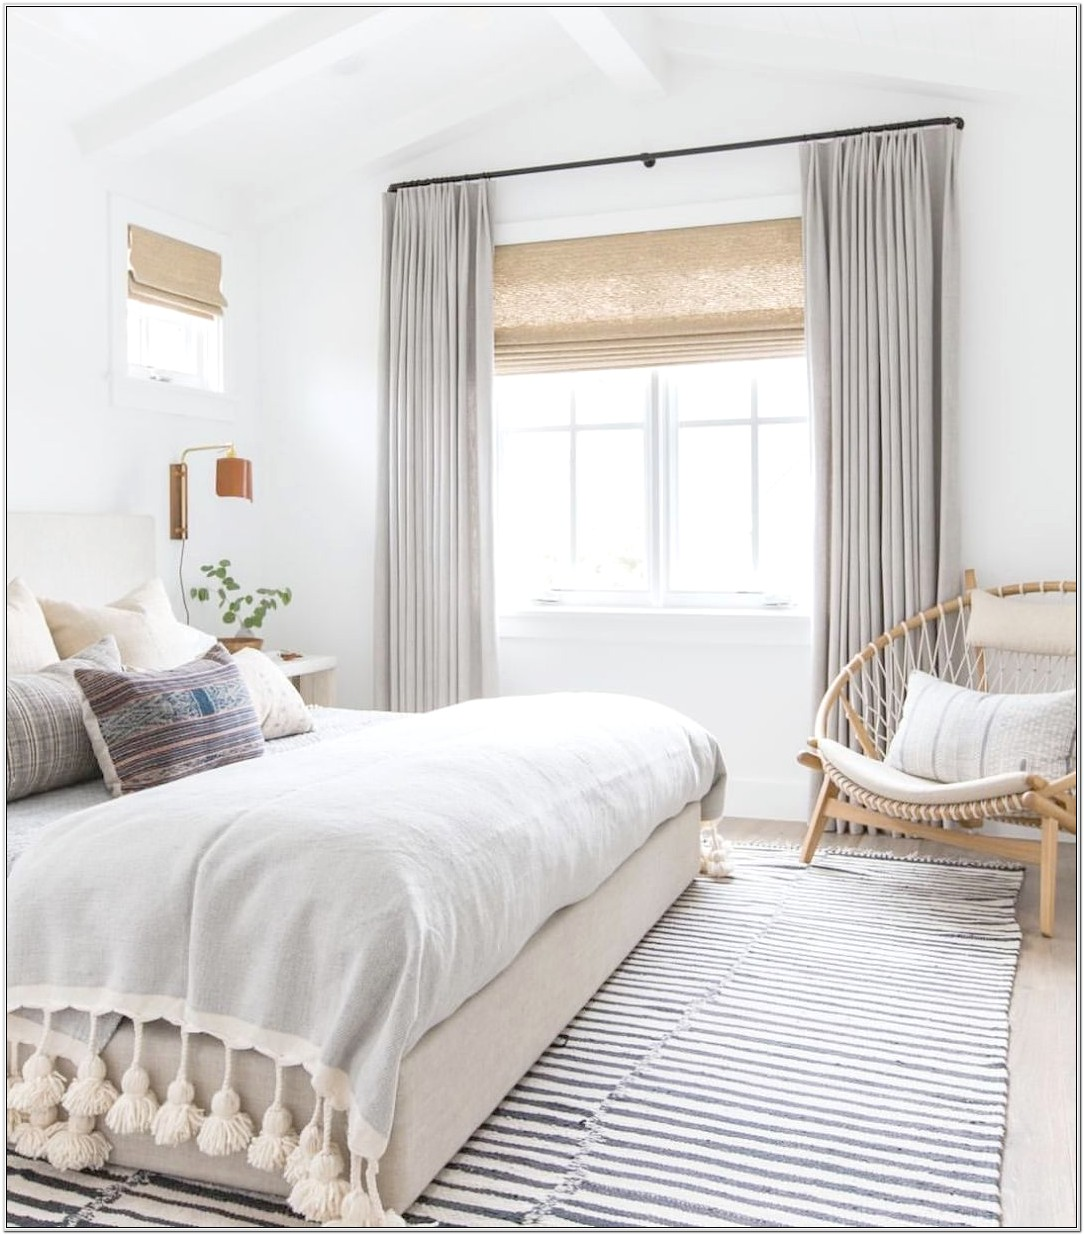 Decorating A Beach Cottage Bedroom